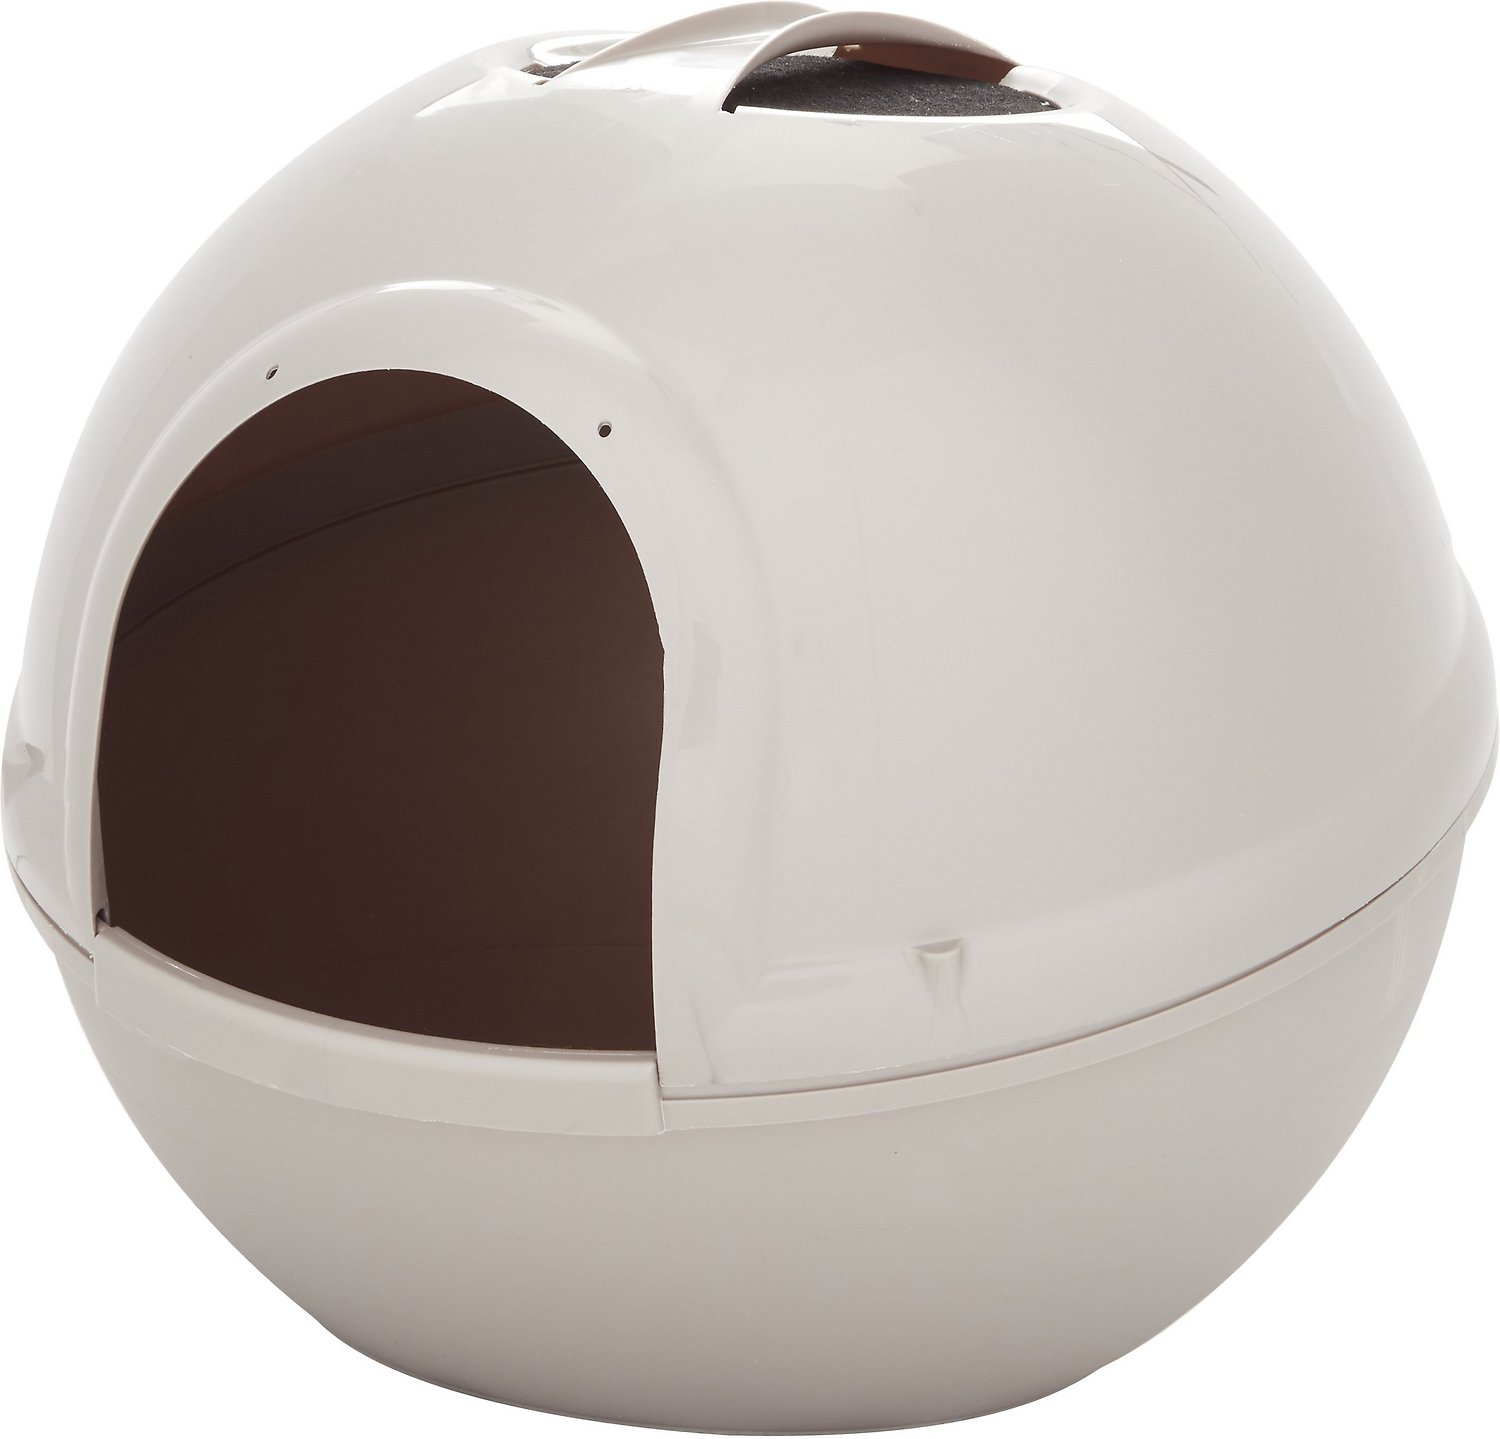 petmate litter dome instructions